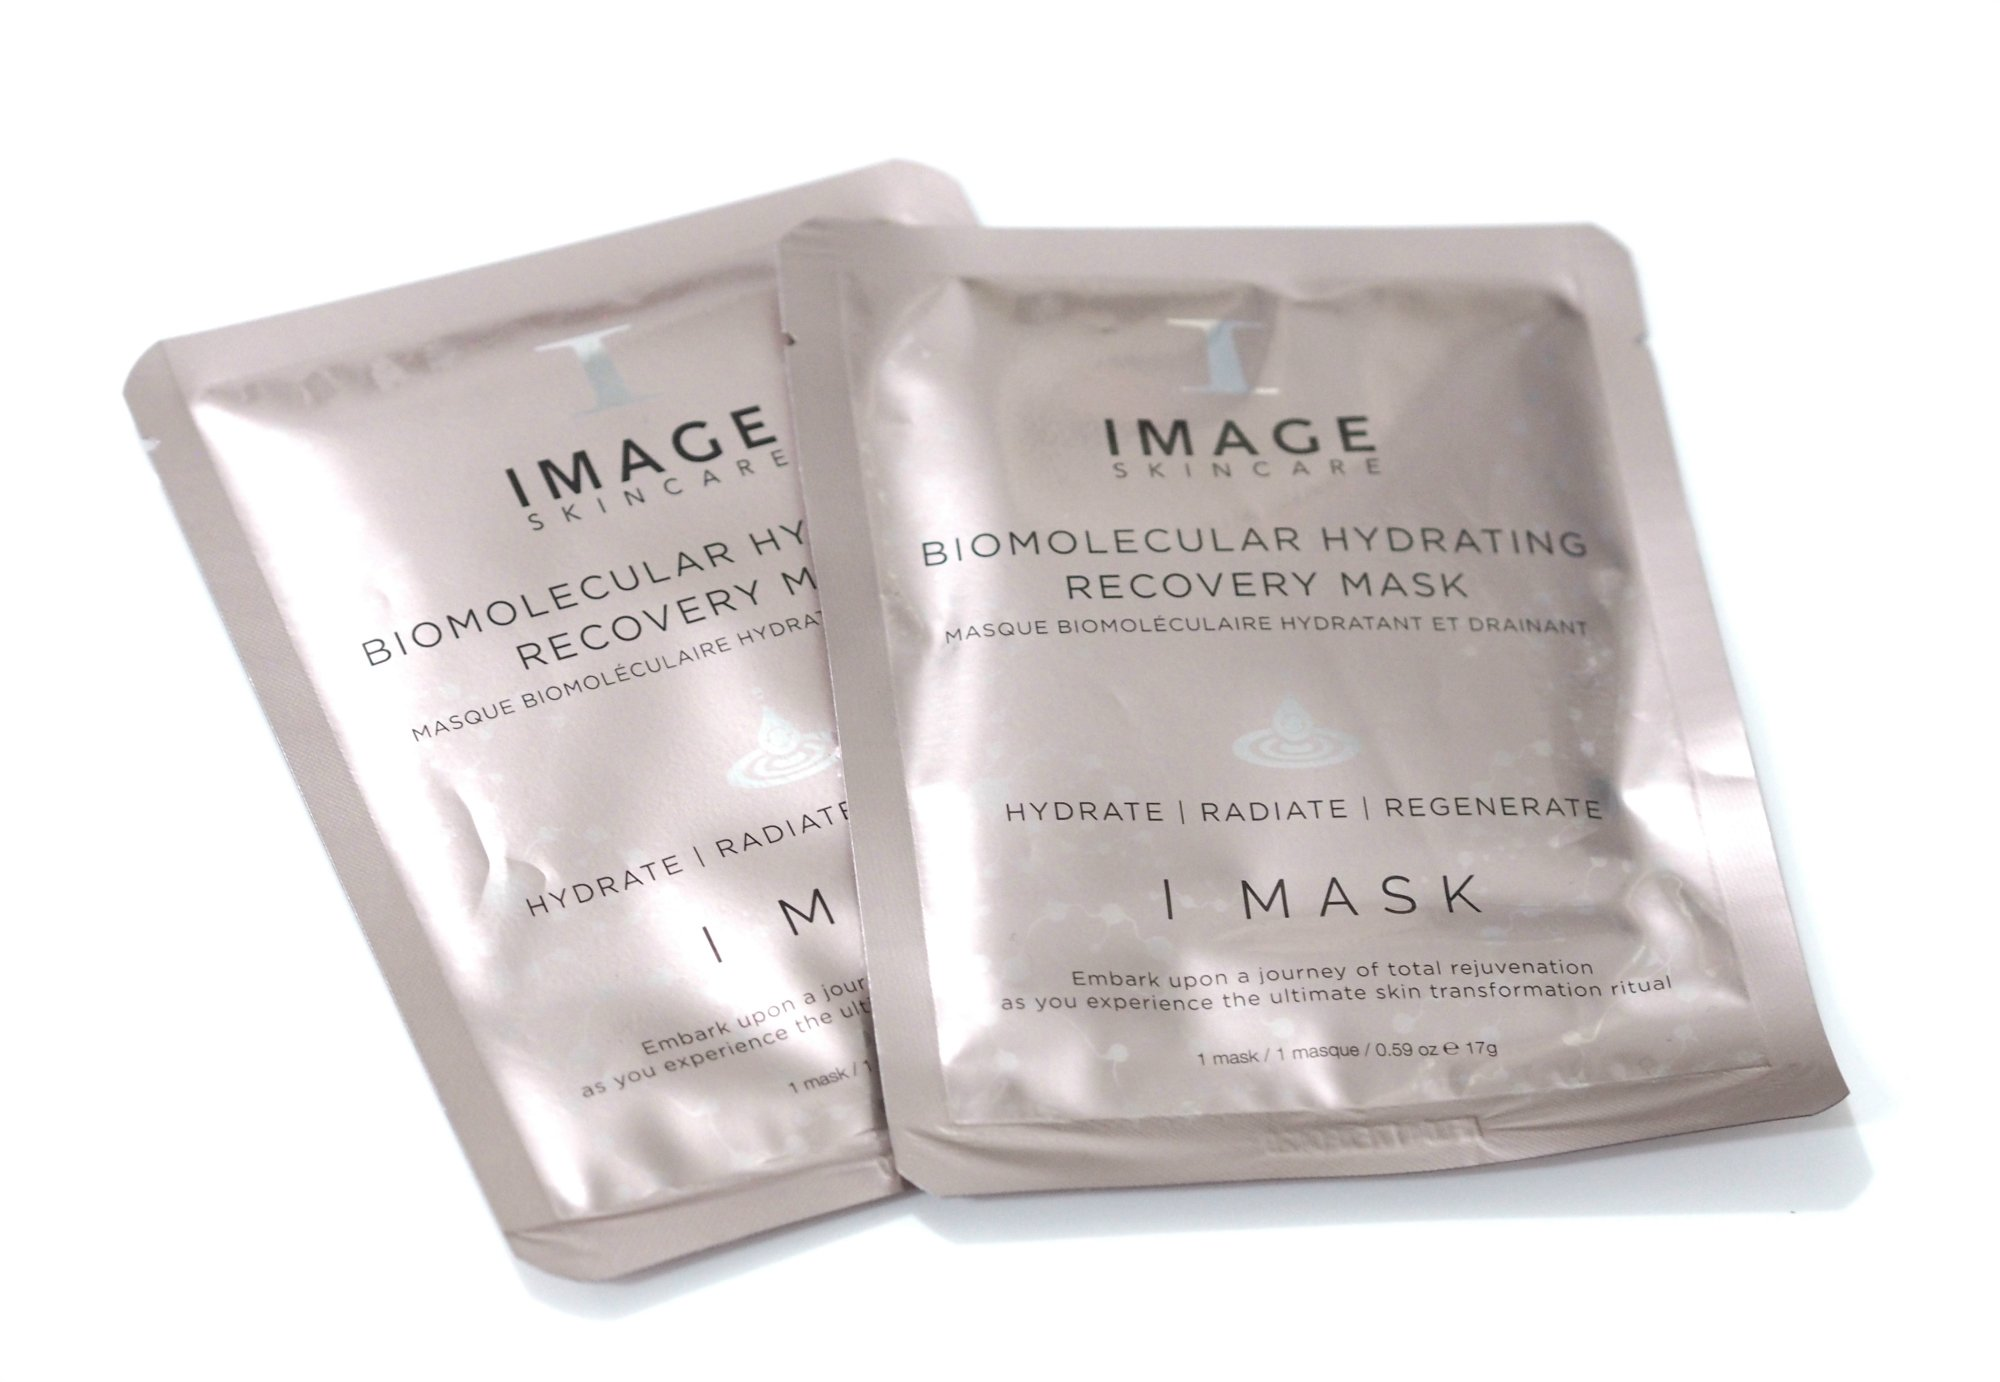 Mother's Day Gift Guide 2019 - Image Skincare Biomollecular Hydrating Recovery Mask